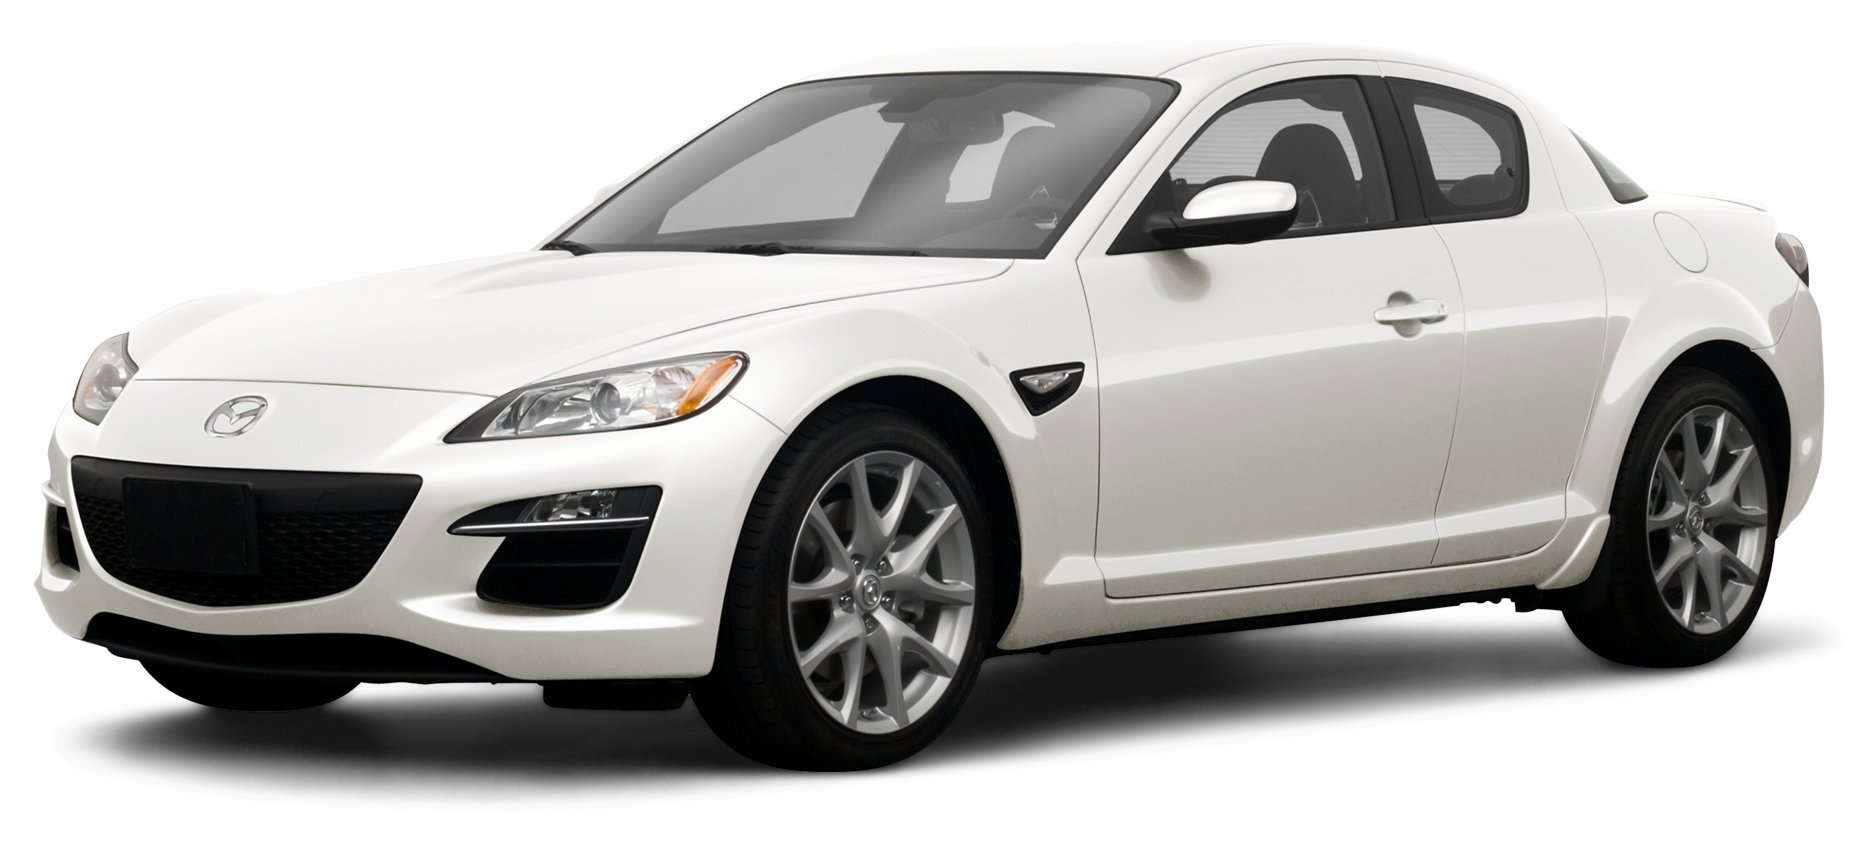 Amazon Com 2009 Mazda Rx 8 Reviews Images And Specs Vehicles